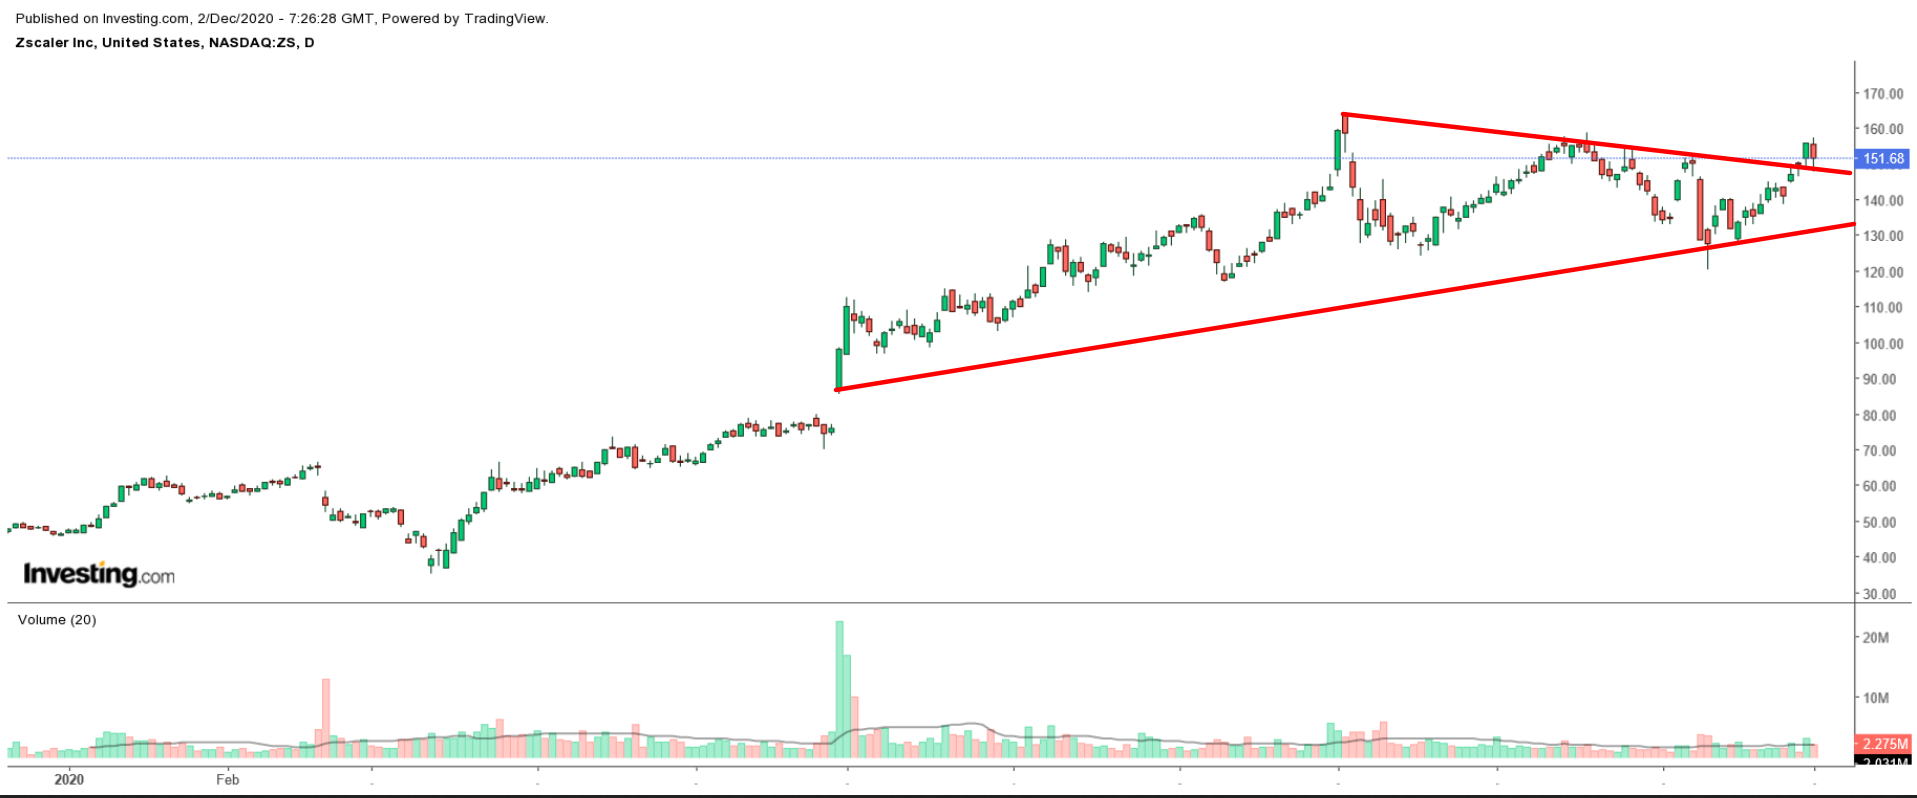 Zscaler Daily Chart